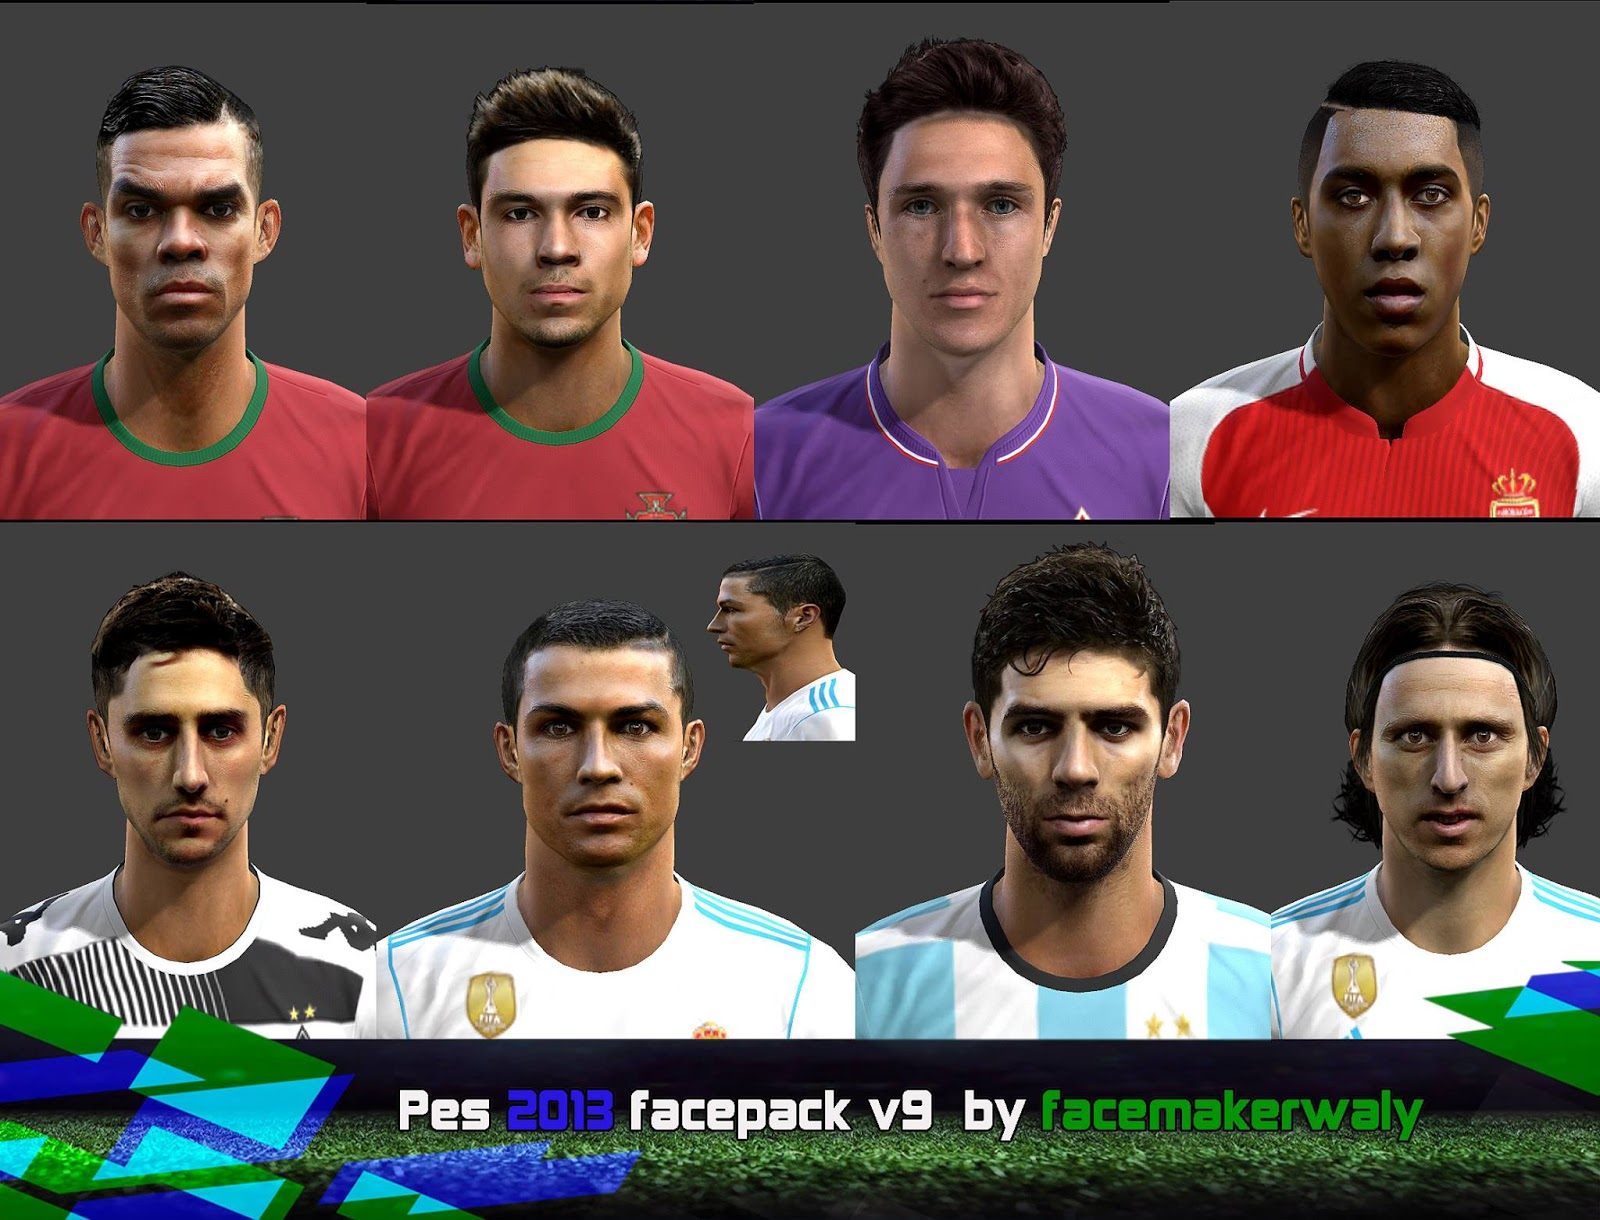 PES 2013 Facepack V9 By Facemaker Waly